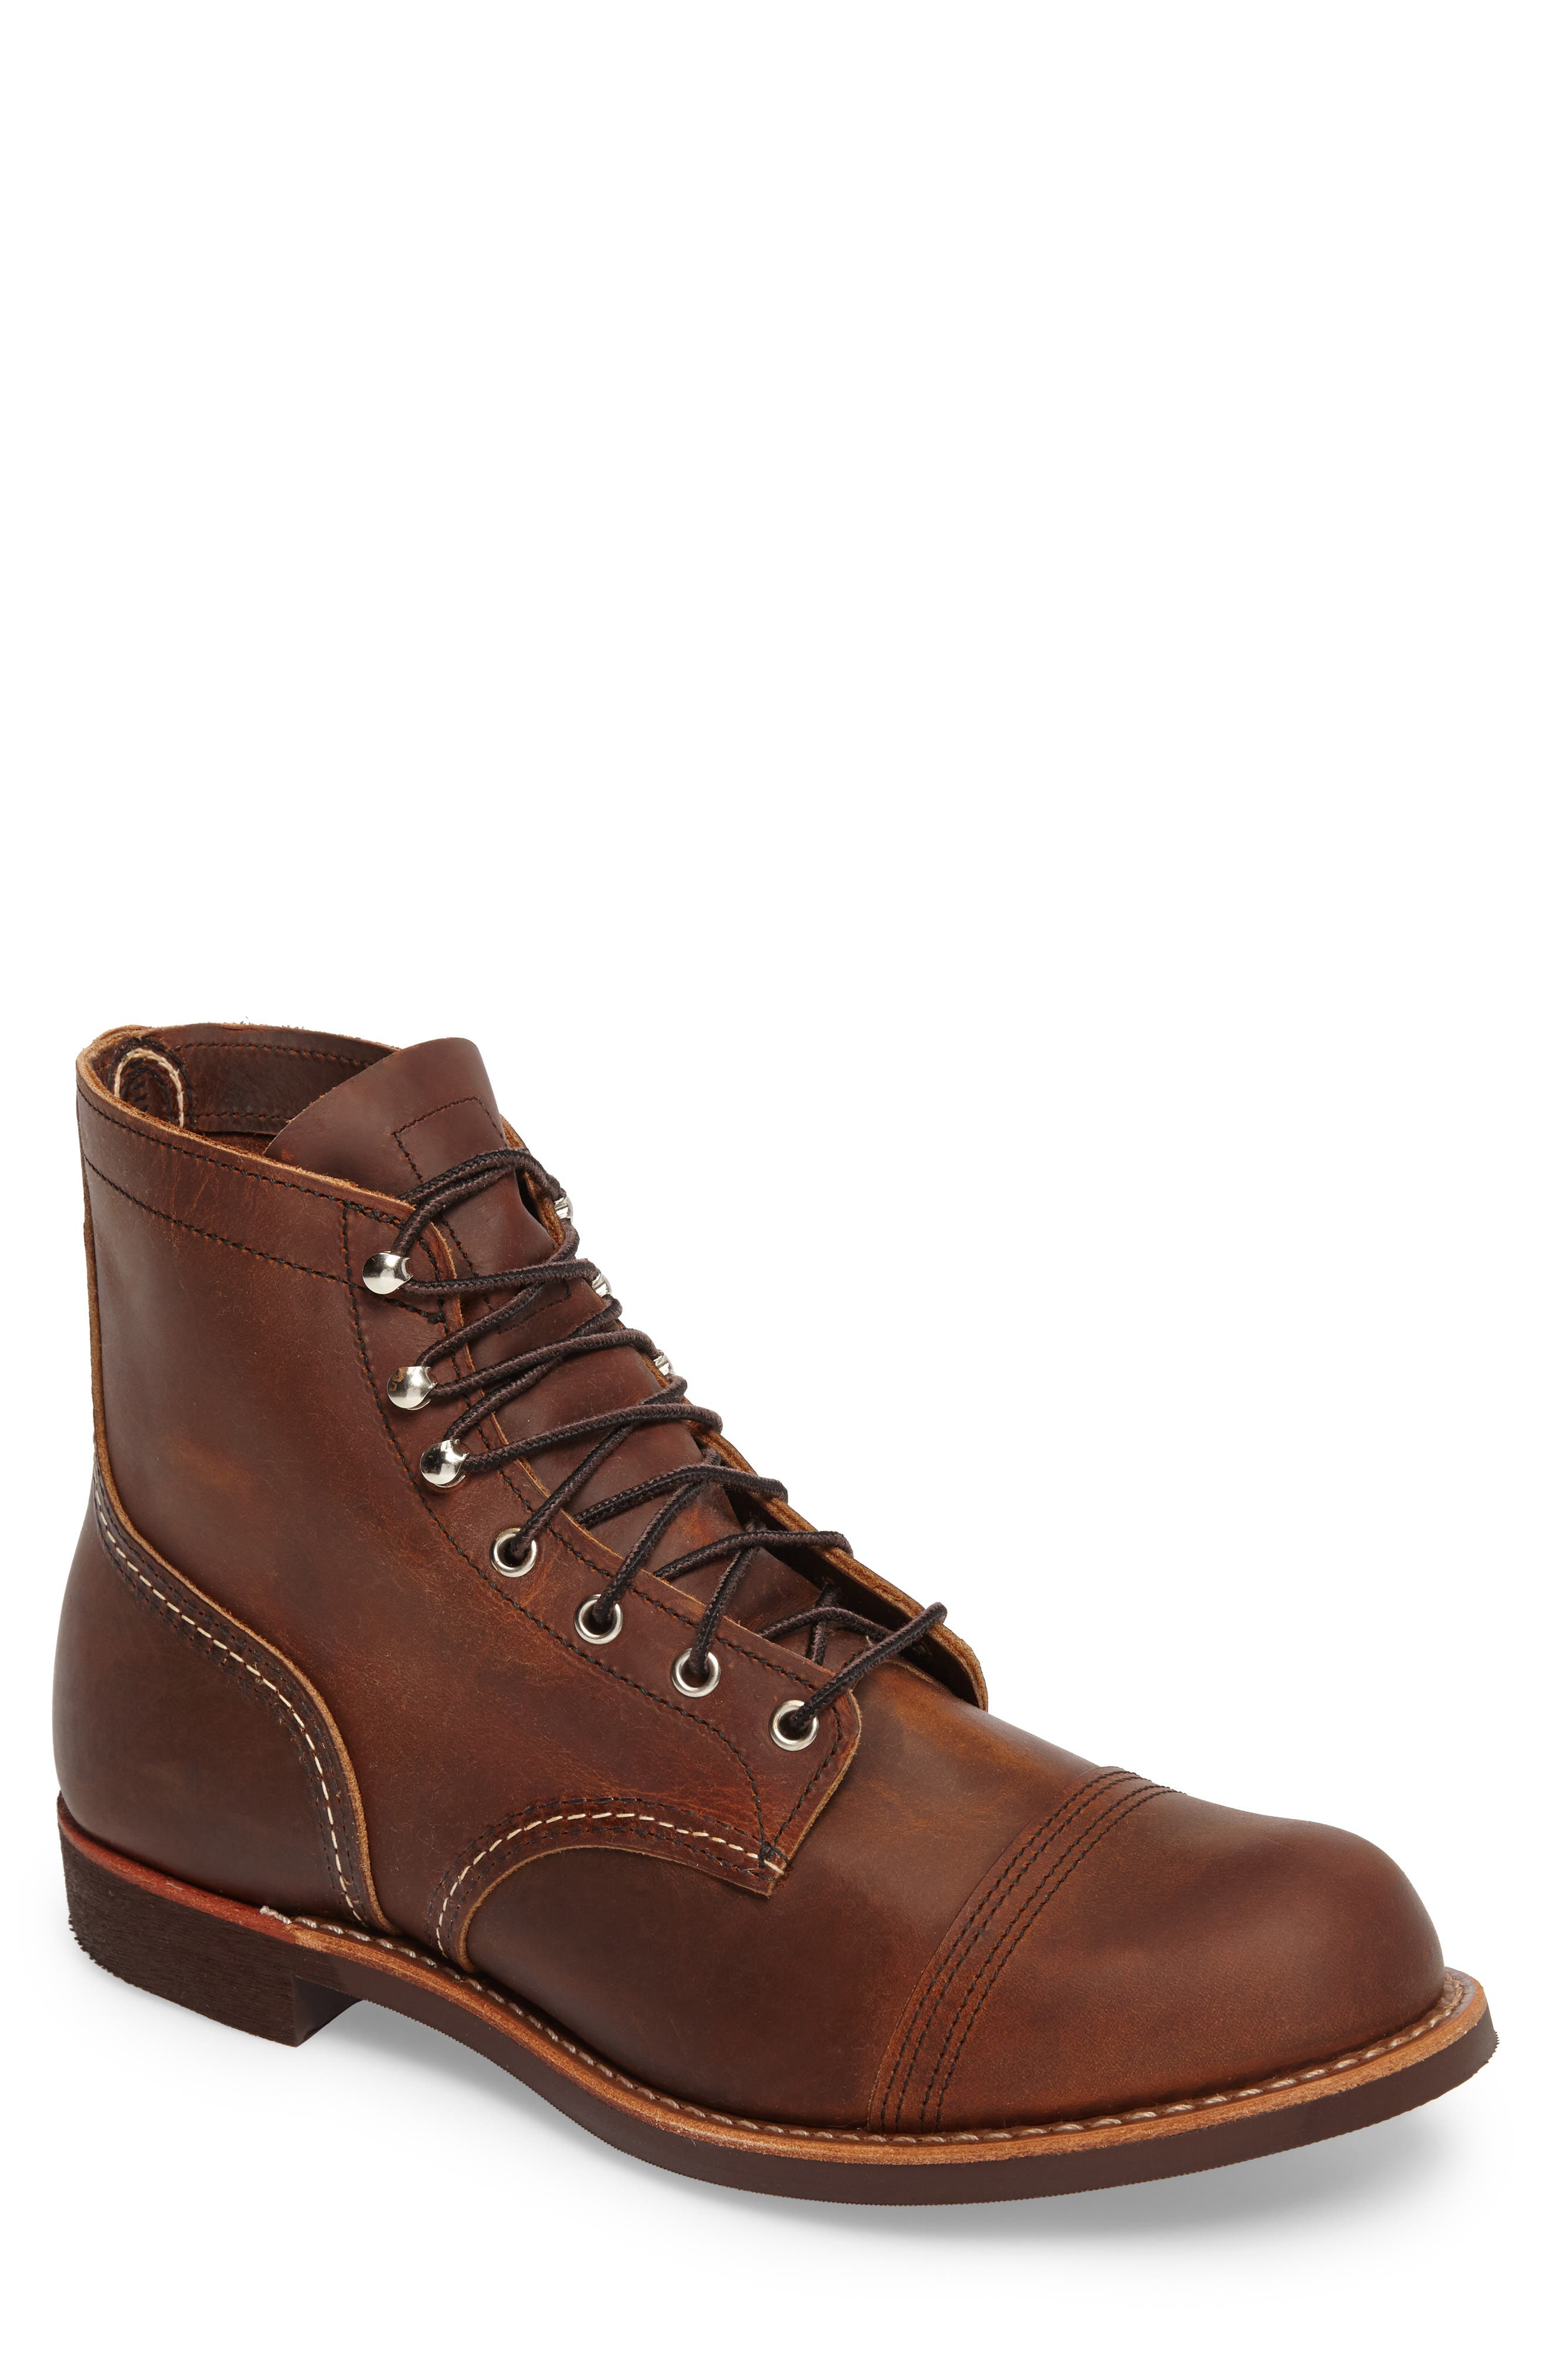 RED WING, Iron Ranger Cap Toe Boot, Main thumbnail 1, color, COPPER LEATHER